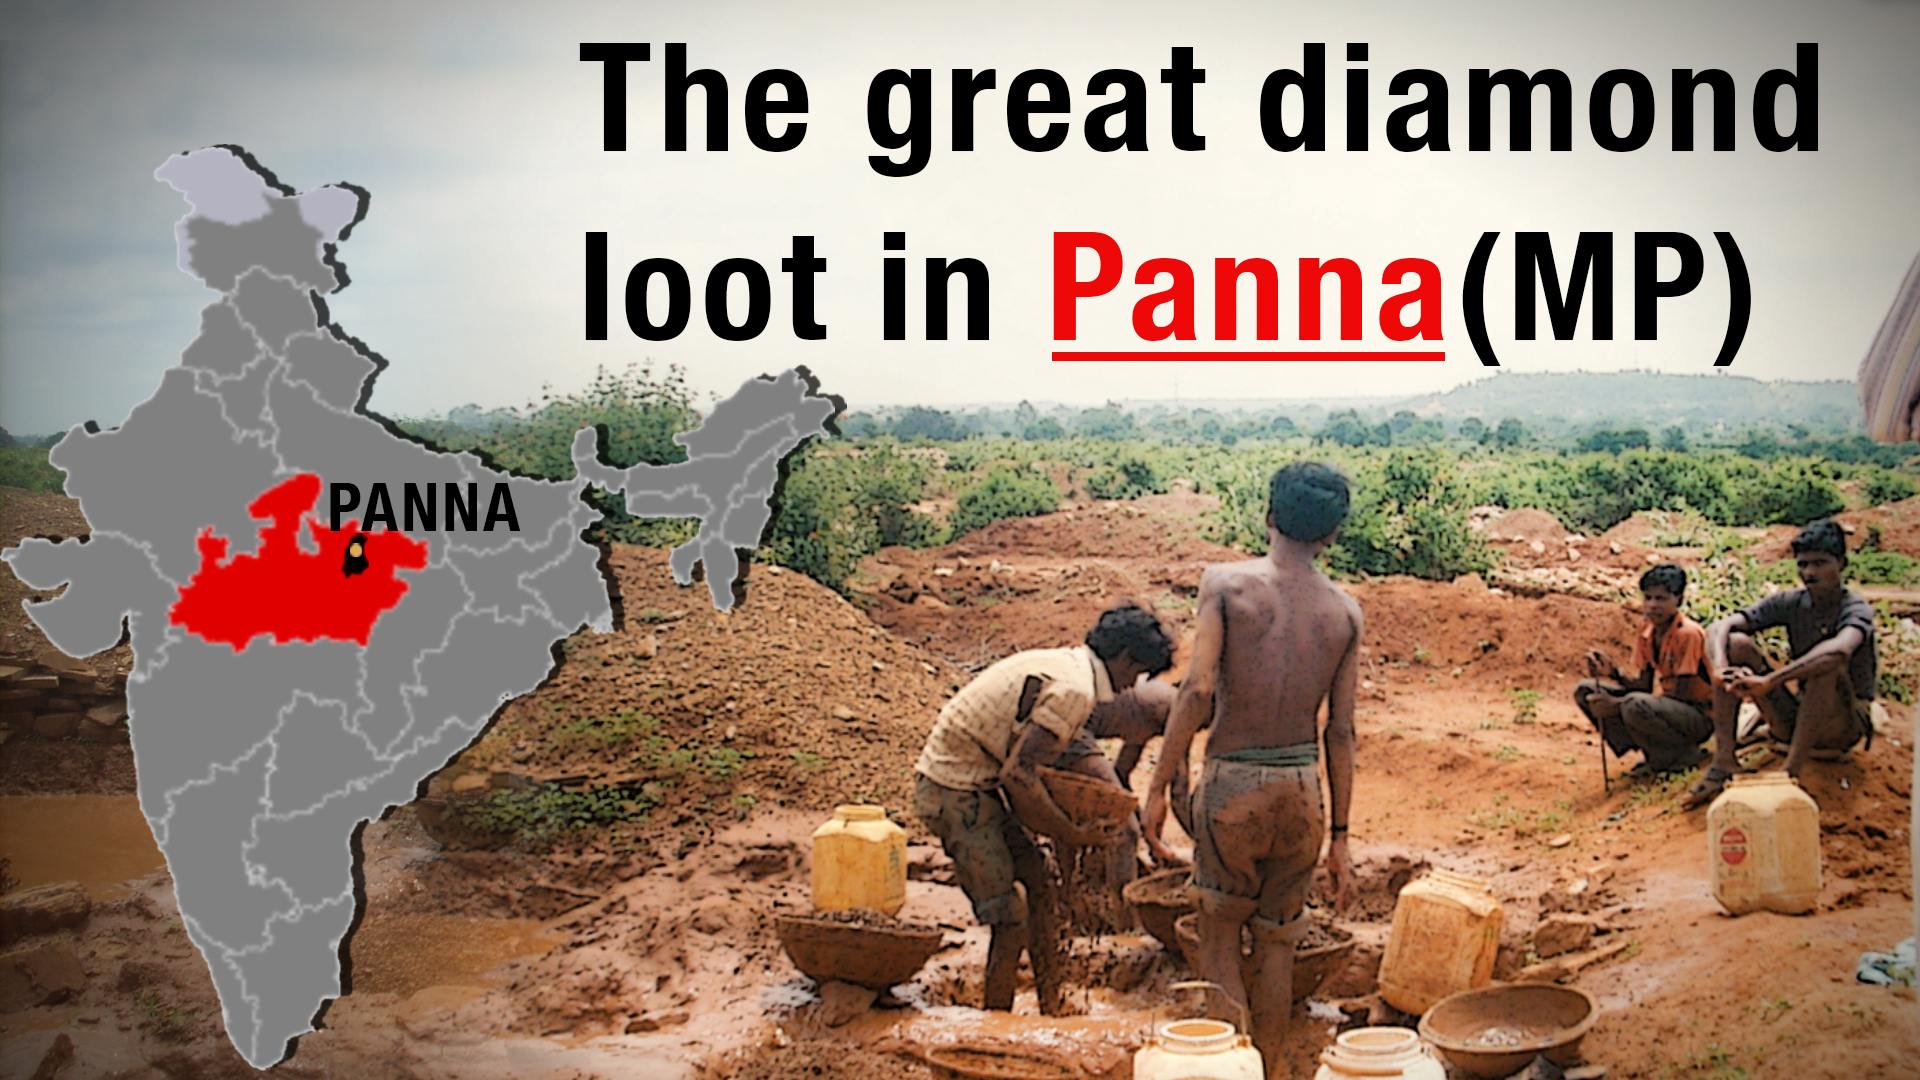 Diamond Mining in Panna